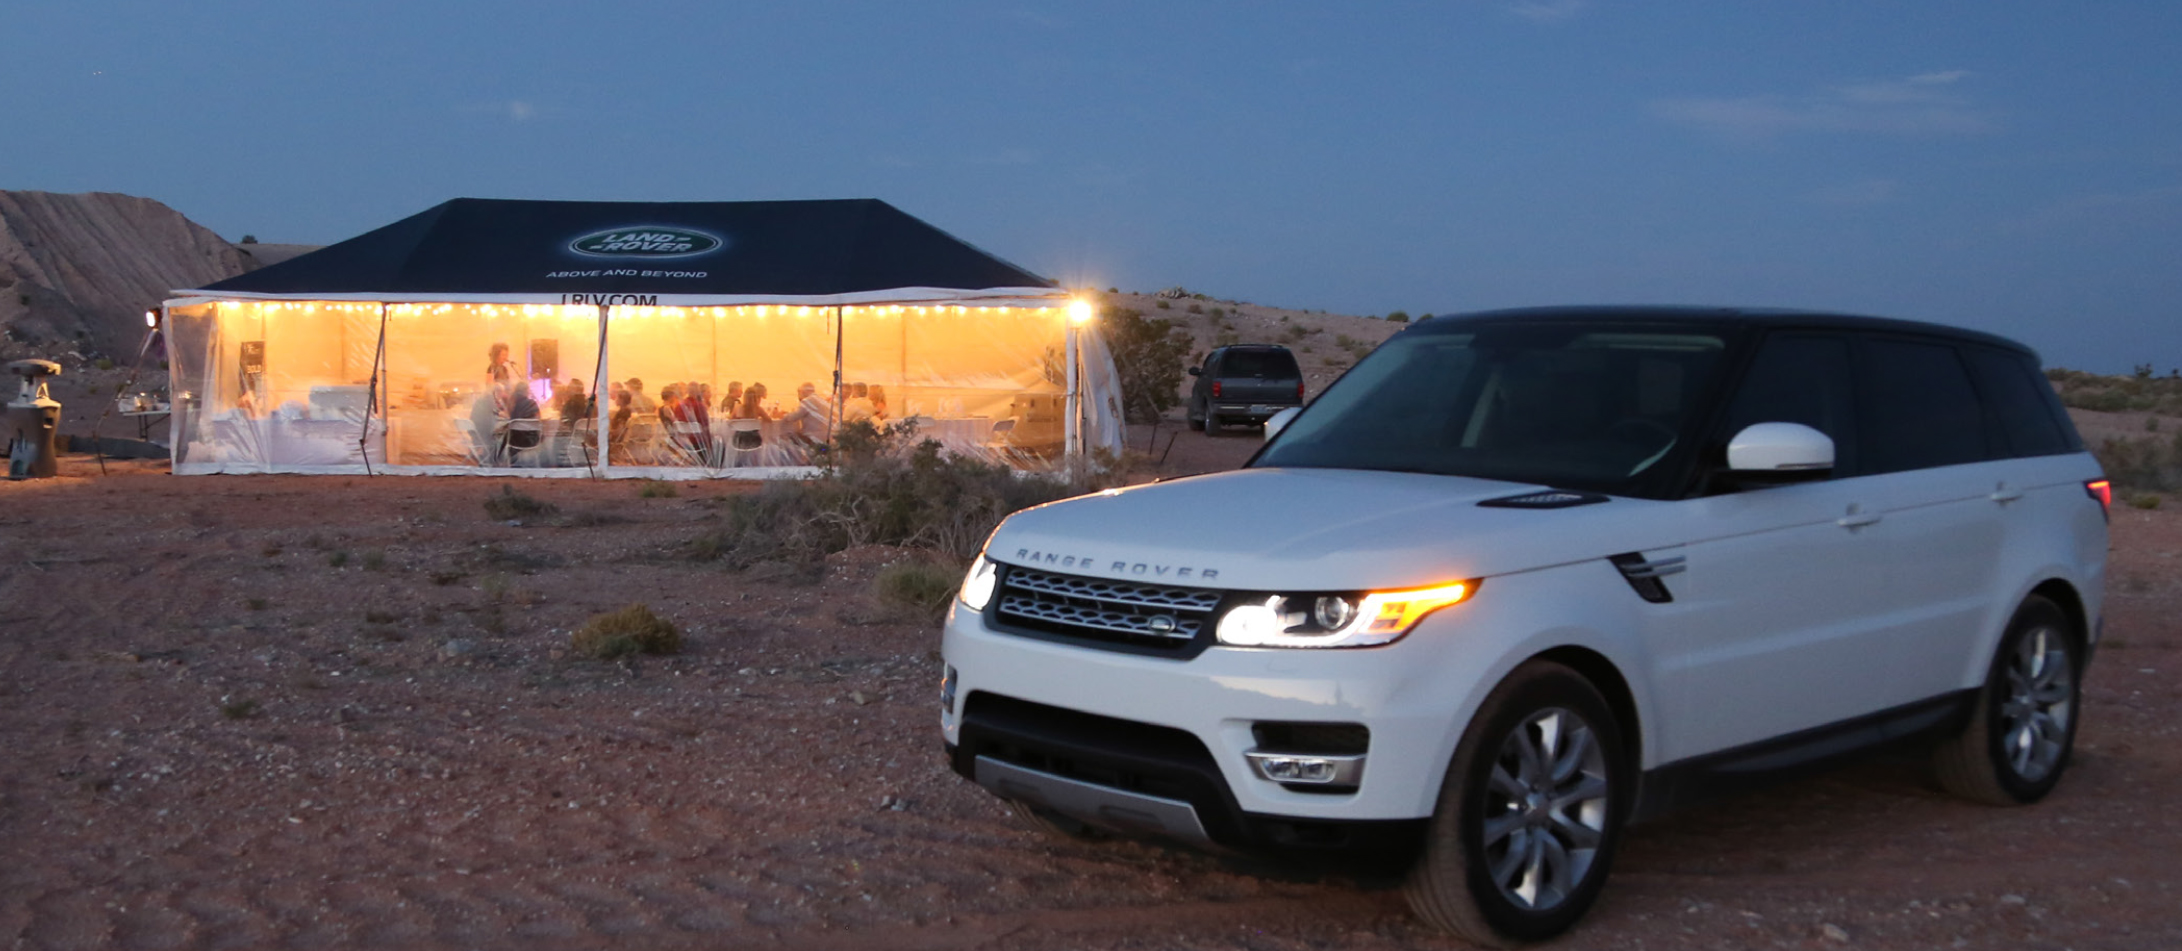 Land Rover Las Vegas Gives Back